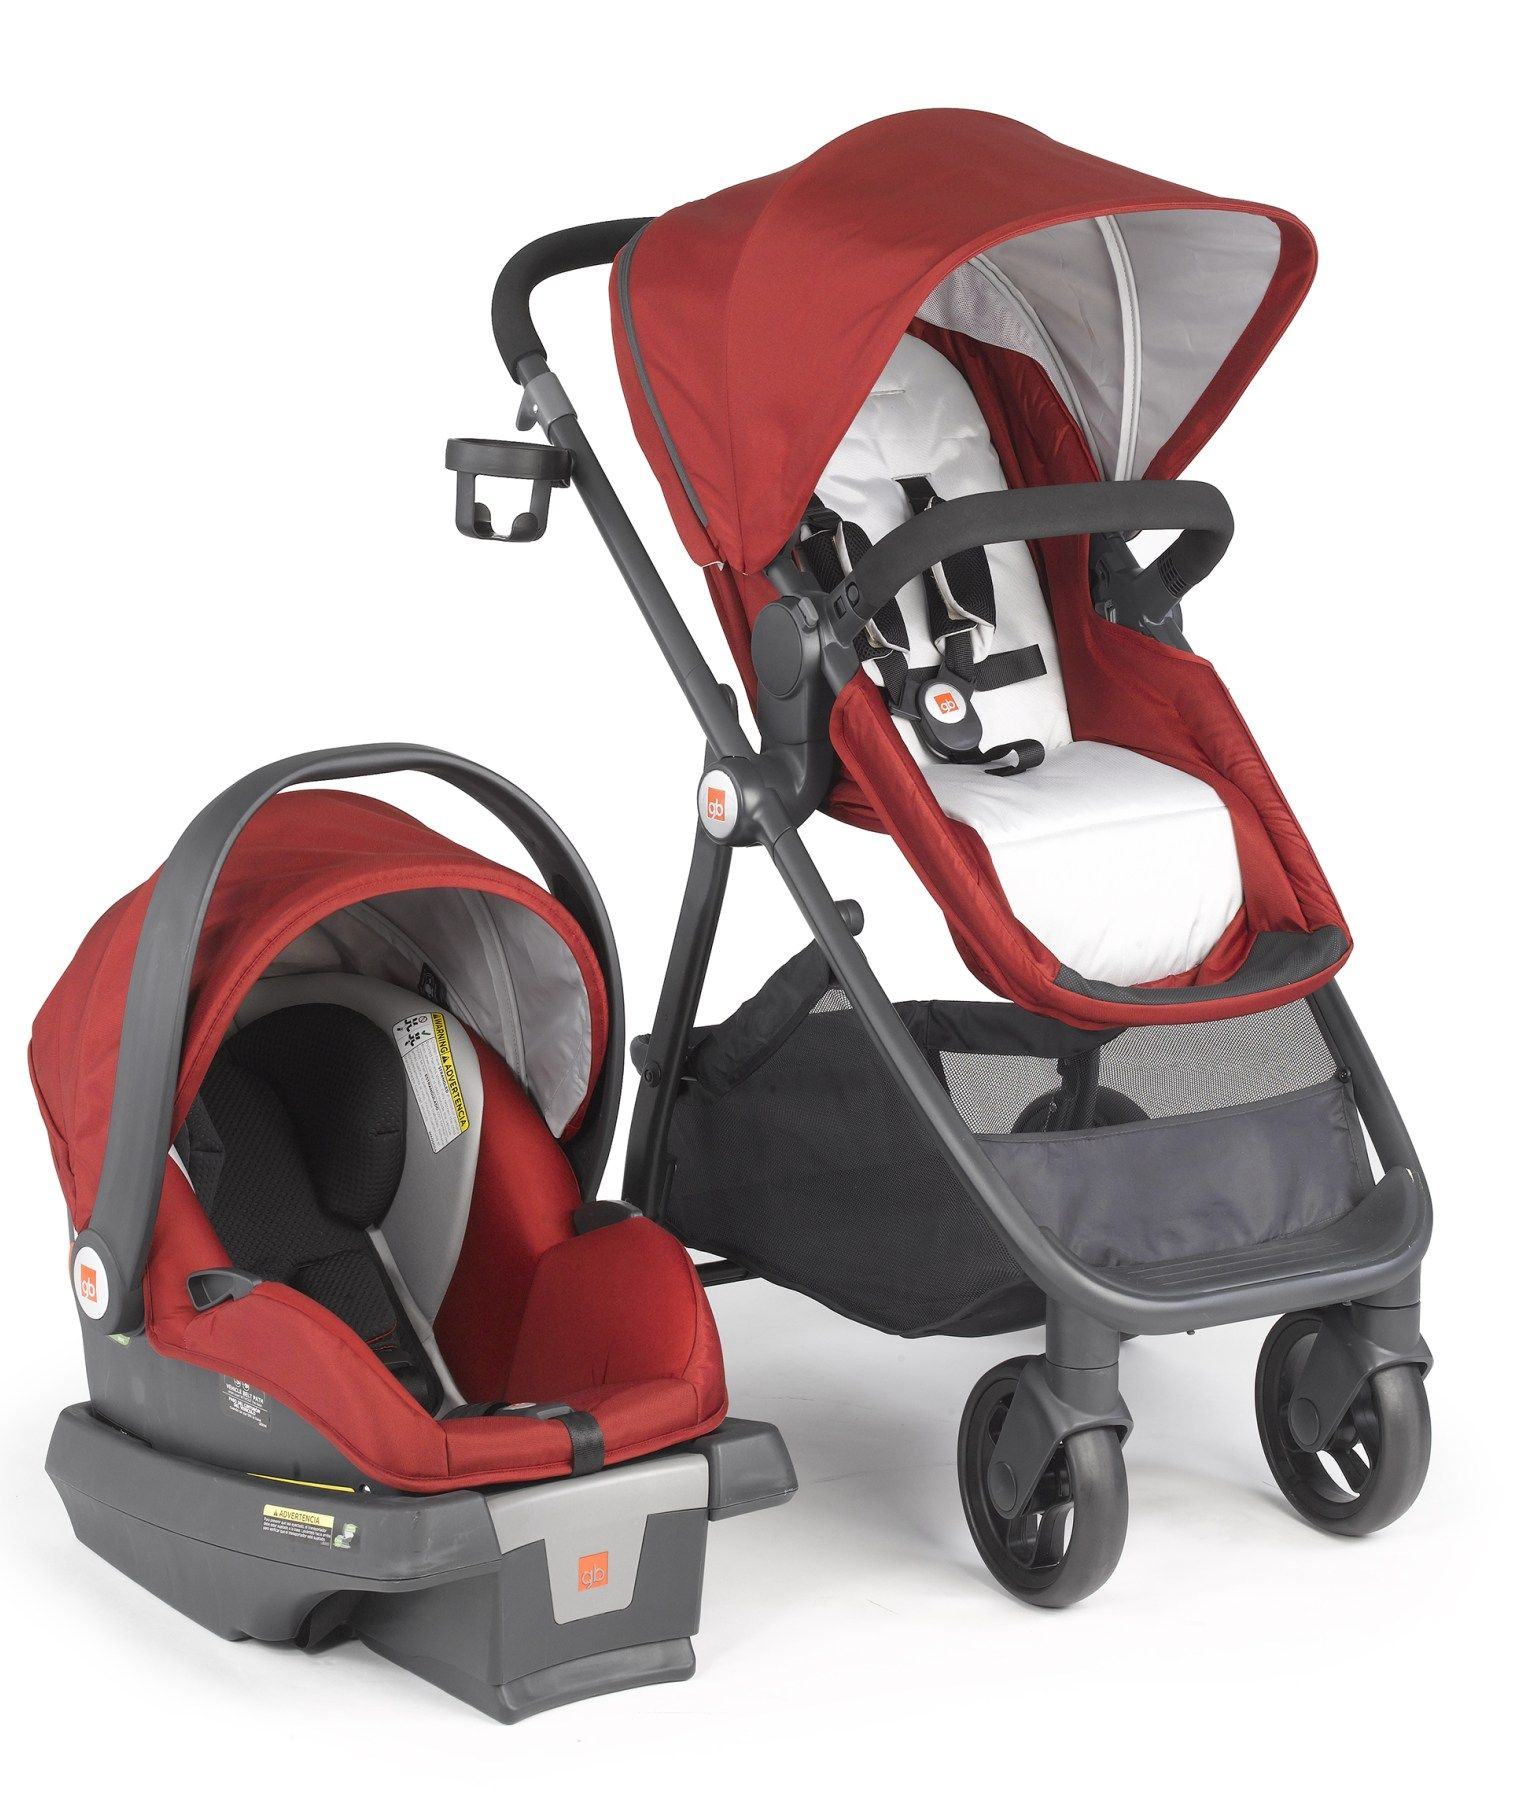 GB Lyfe Travel System Stroller and Car Seat in Merlot